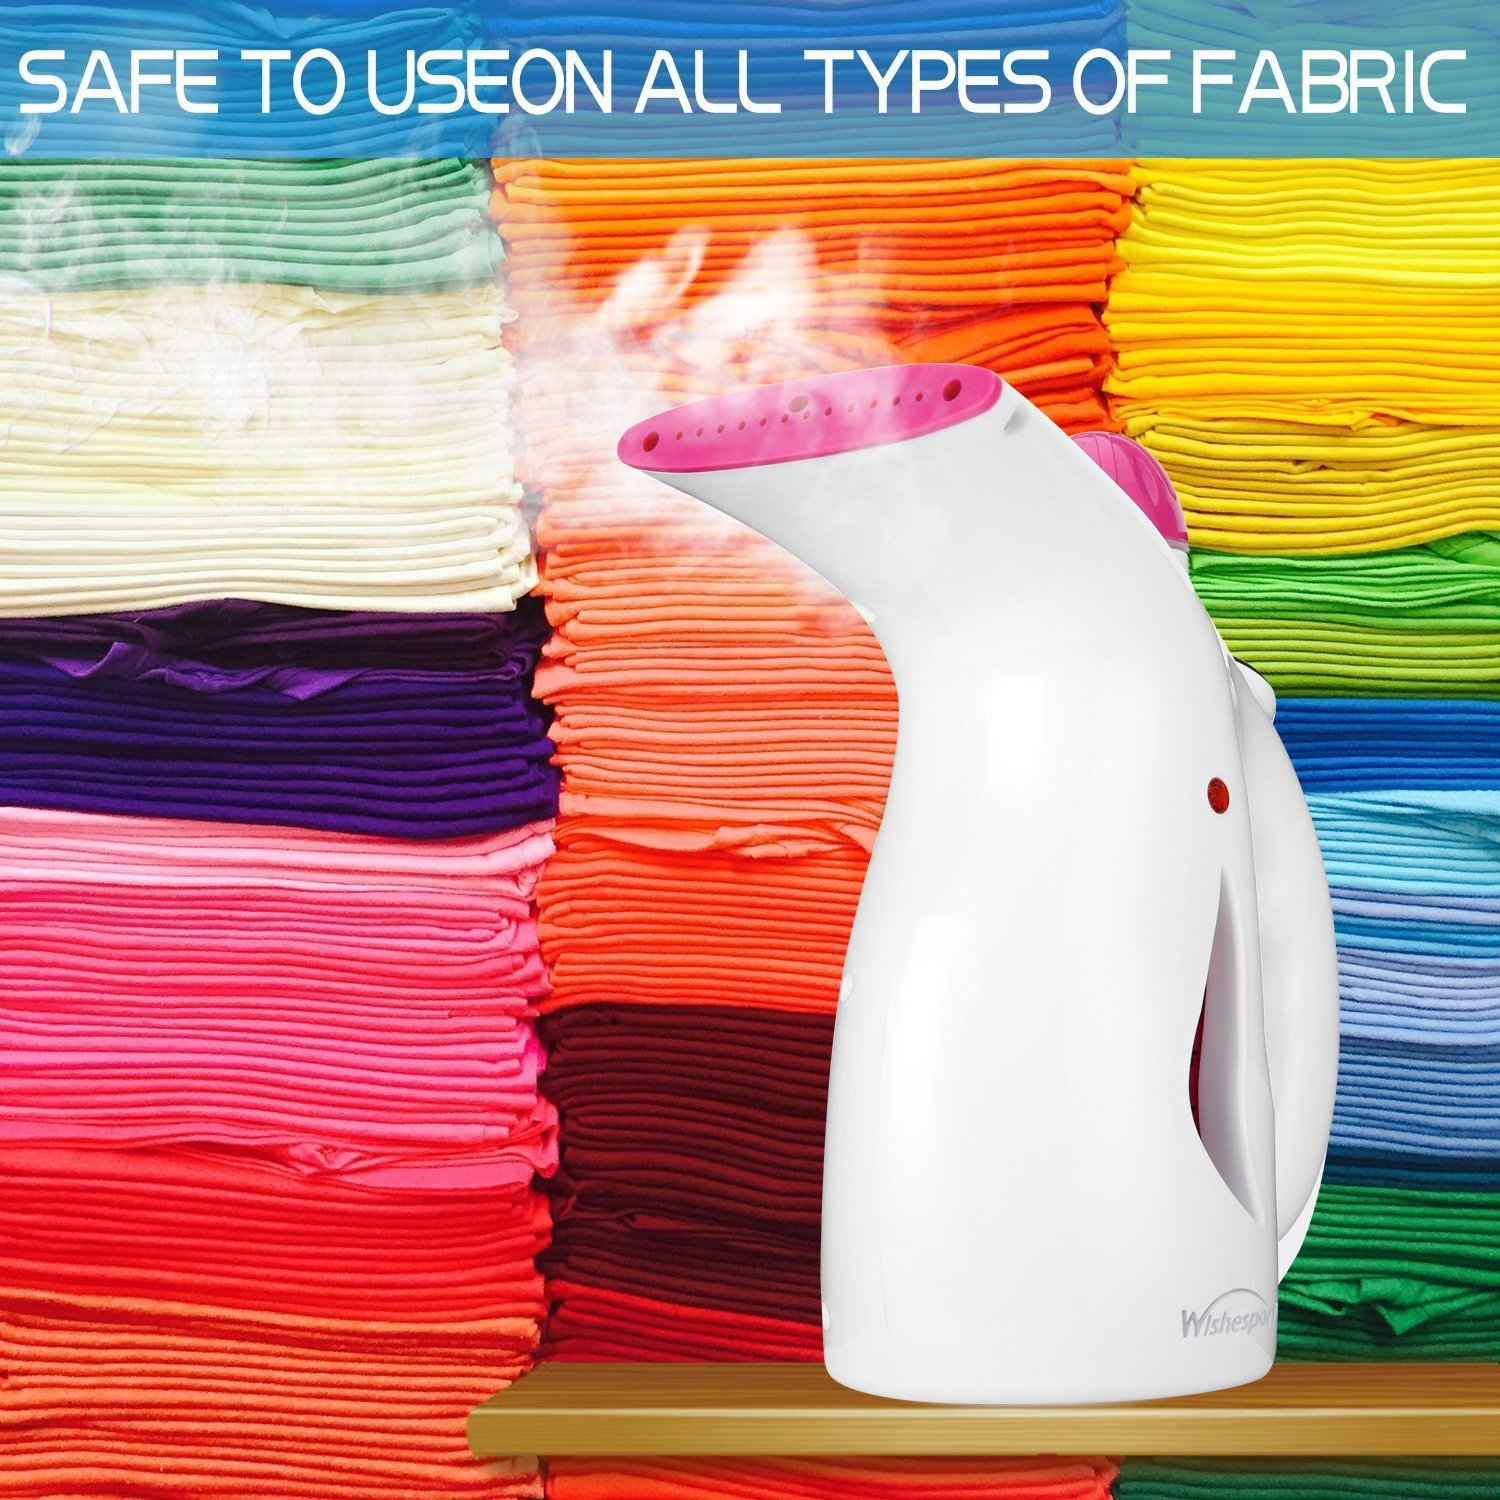 WISHESPORT Steamer For Clothes,2 in 1 Handhold Facial Steamer For Ironing Clothes, Garment Steamer Wrinkle Release for Fabric Iron Sterilizer Fast Heating Spray,Travel Steamer